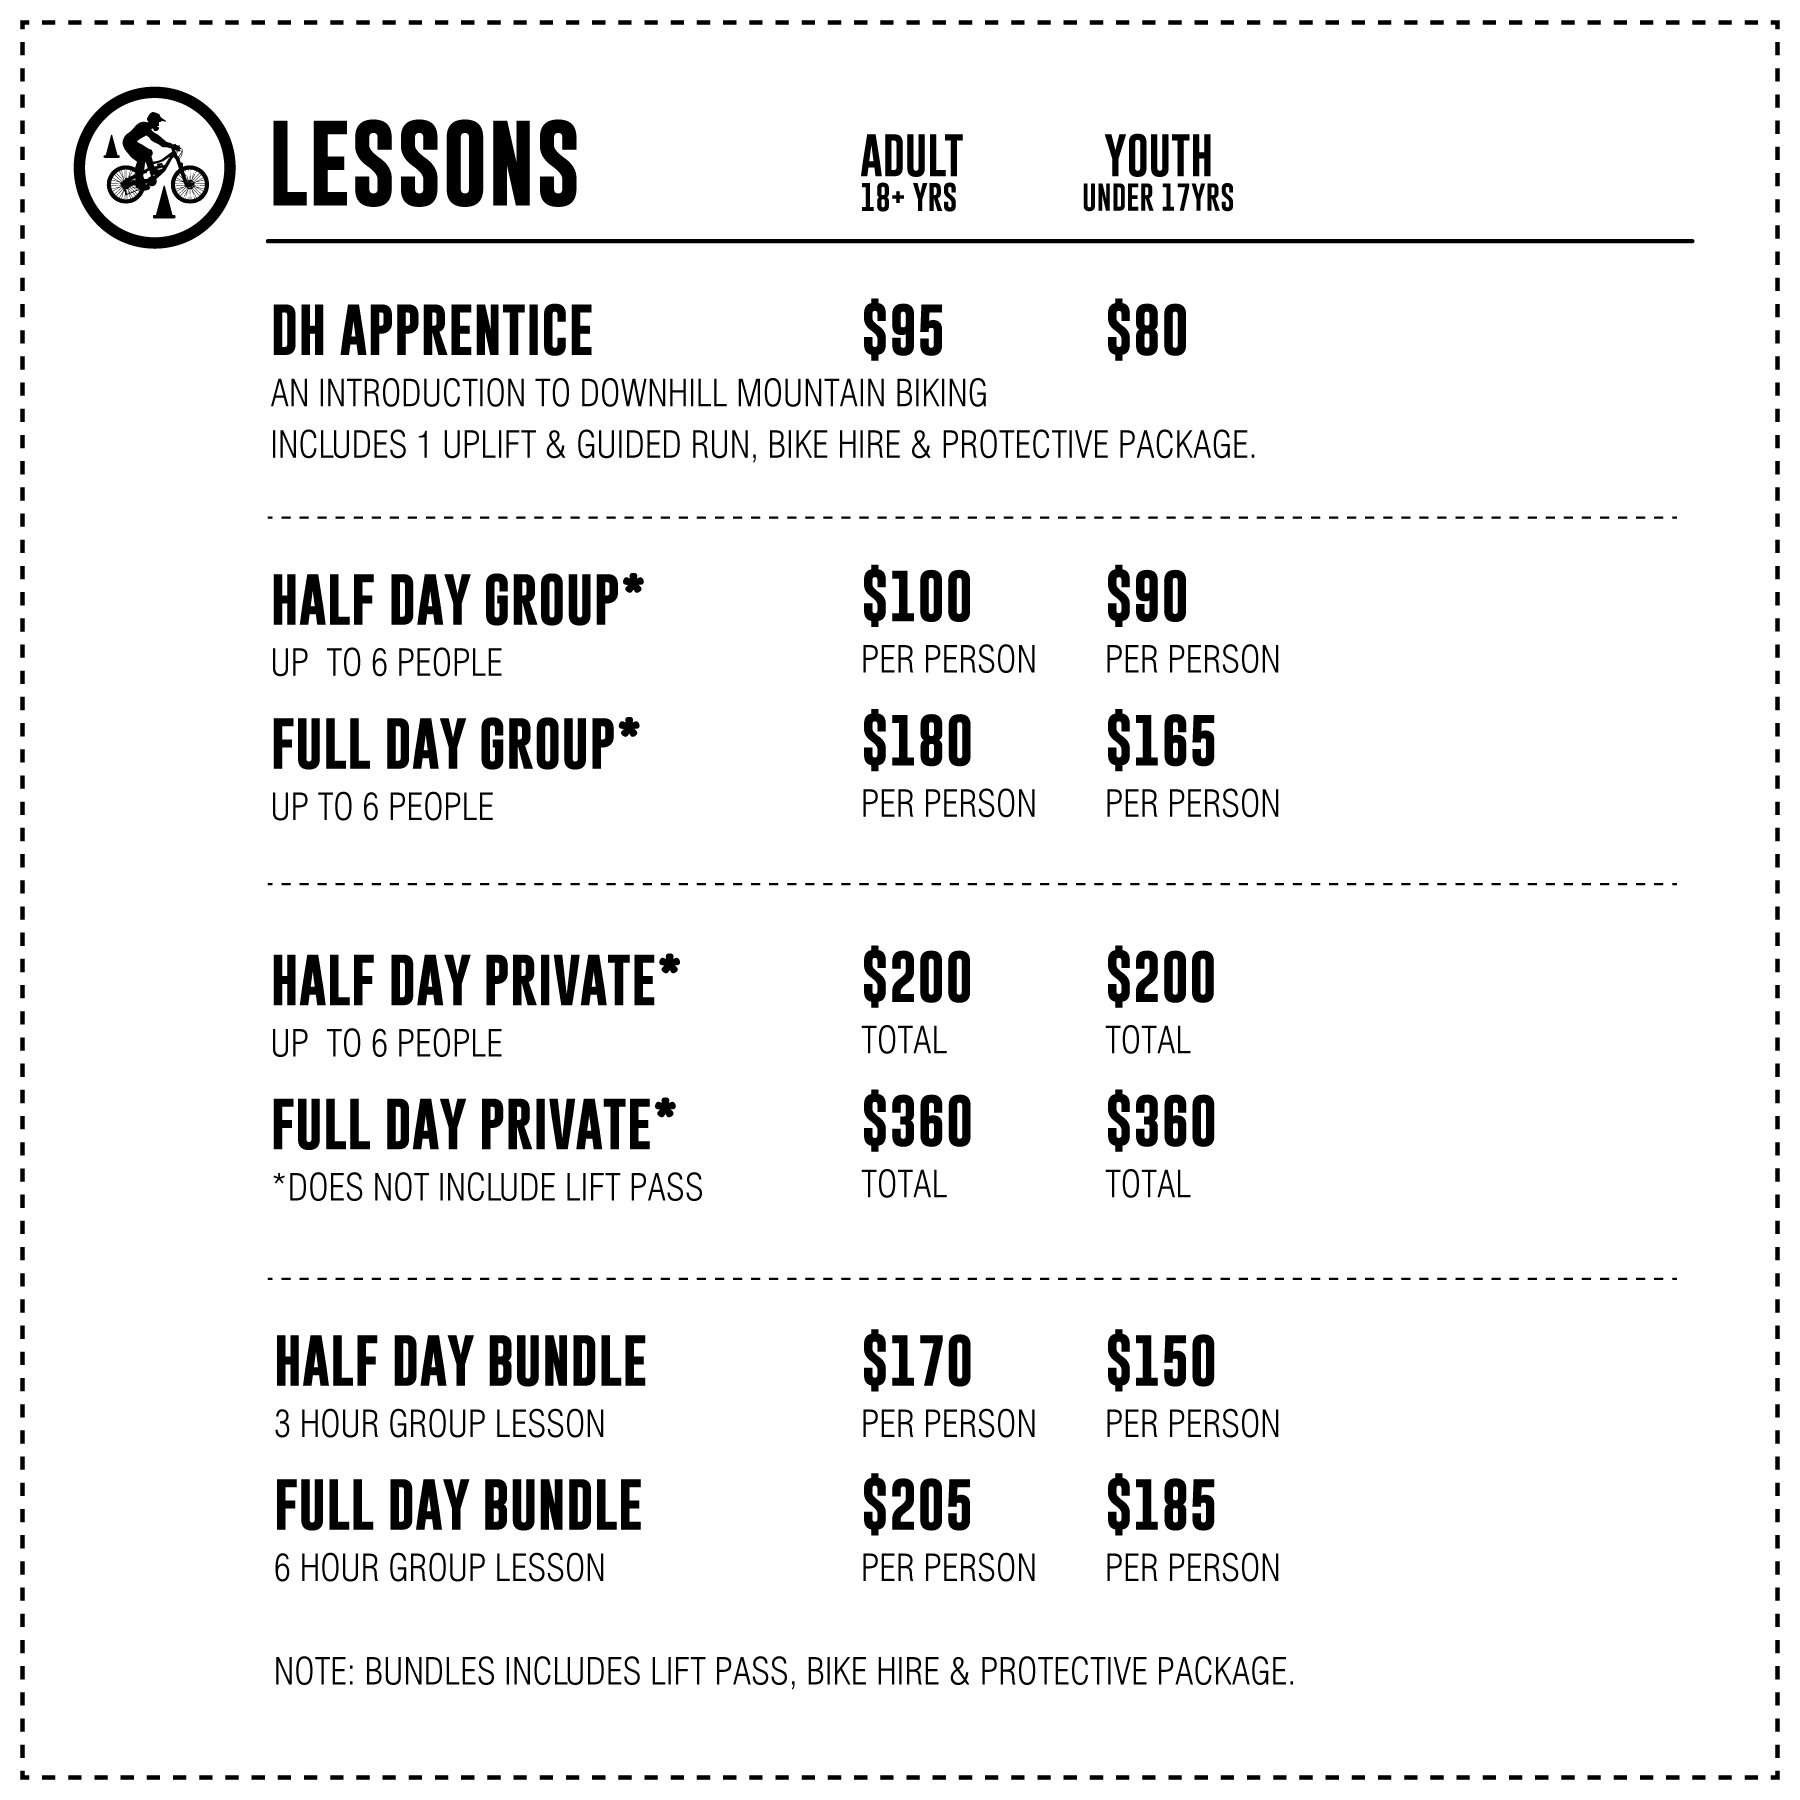 Pricing---Lessons.jpg